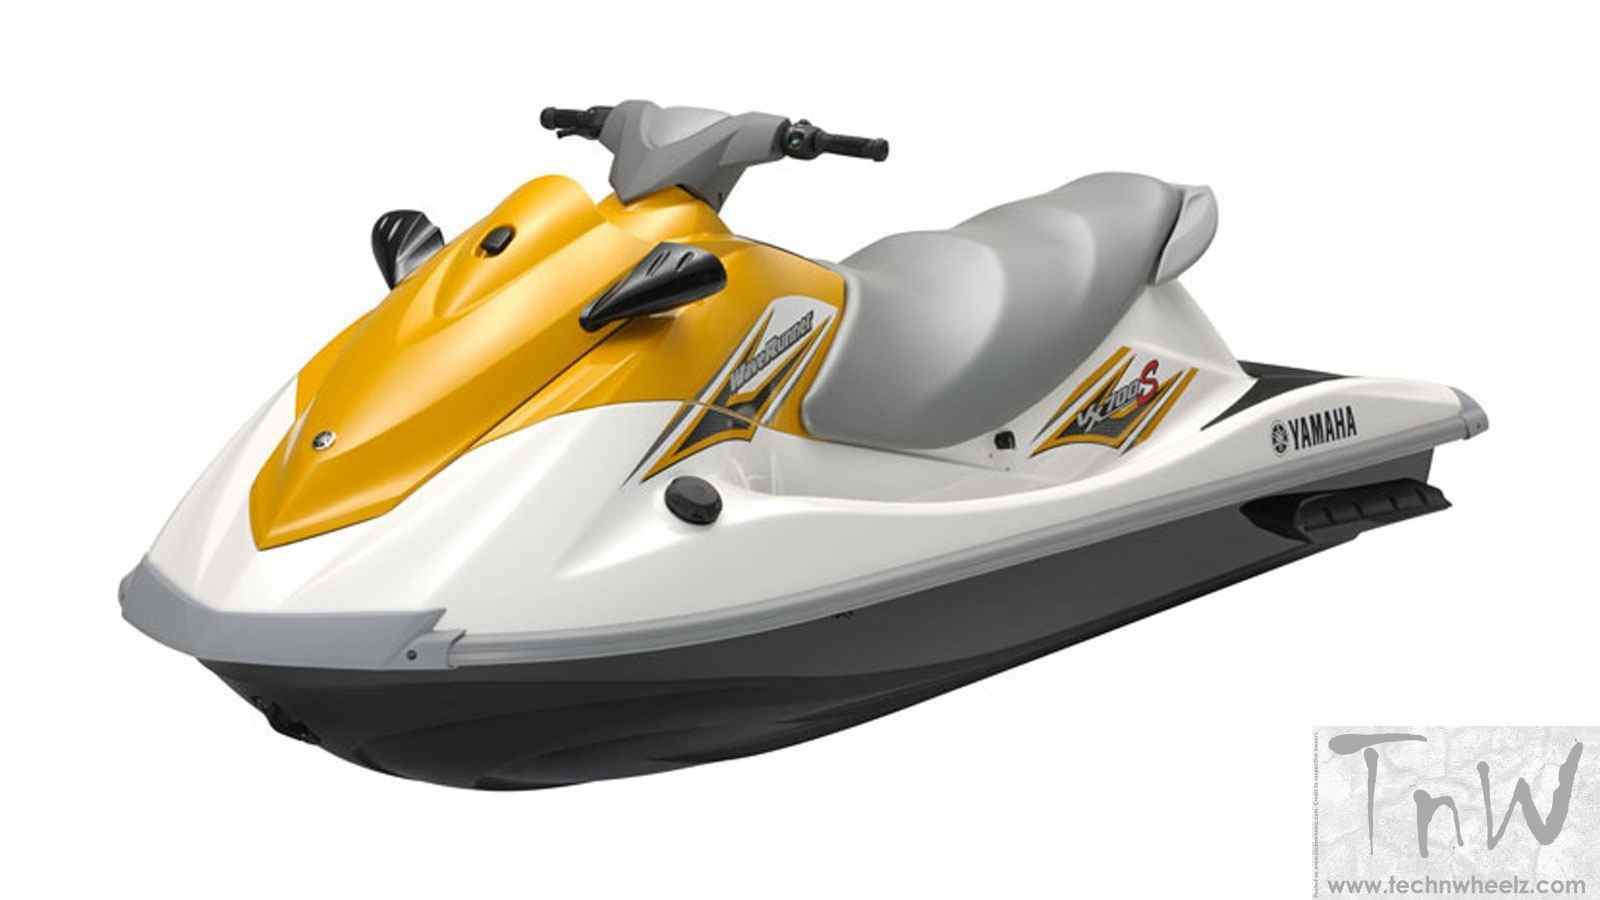 Yamaha vx700s jet ski 38 technwheelz for Yamaha jet ski dealer